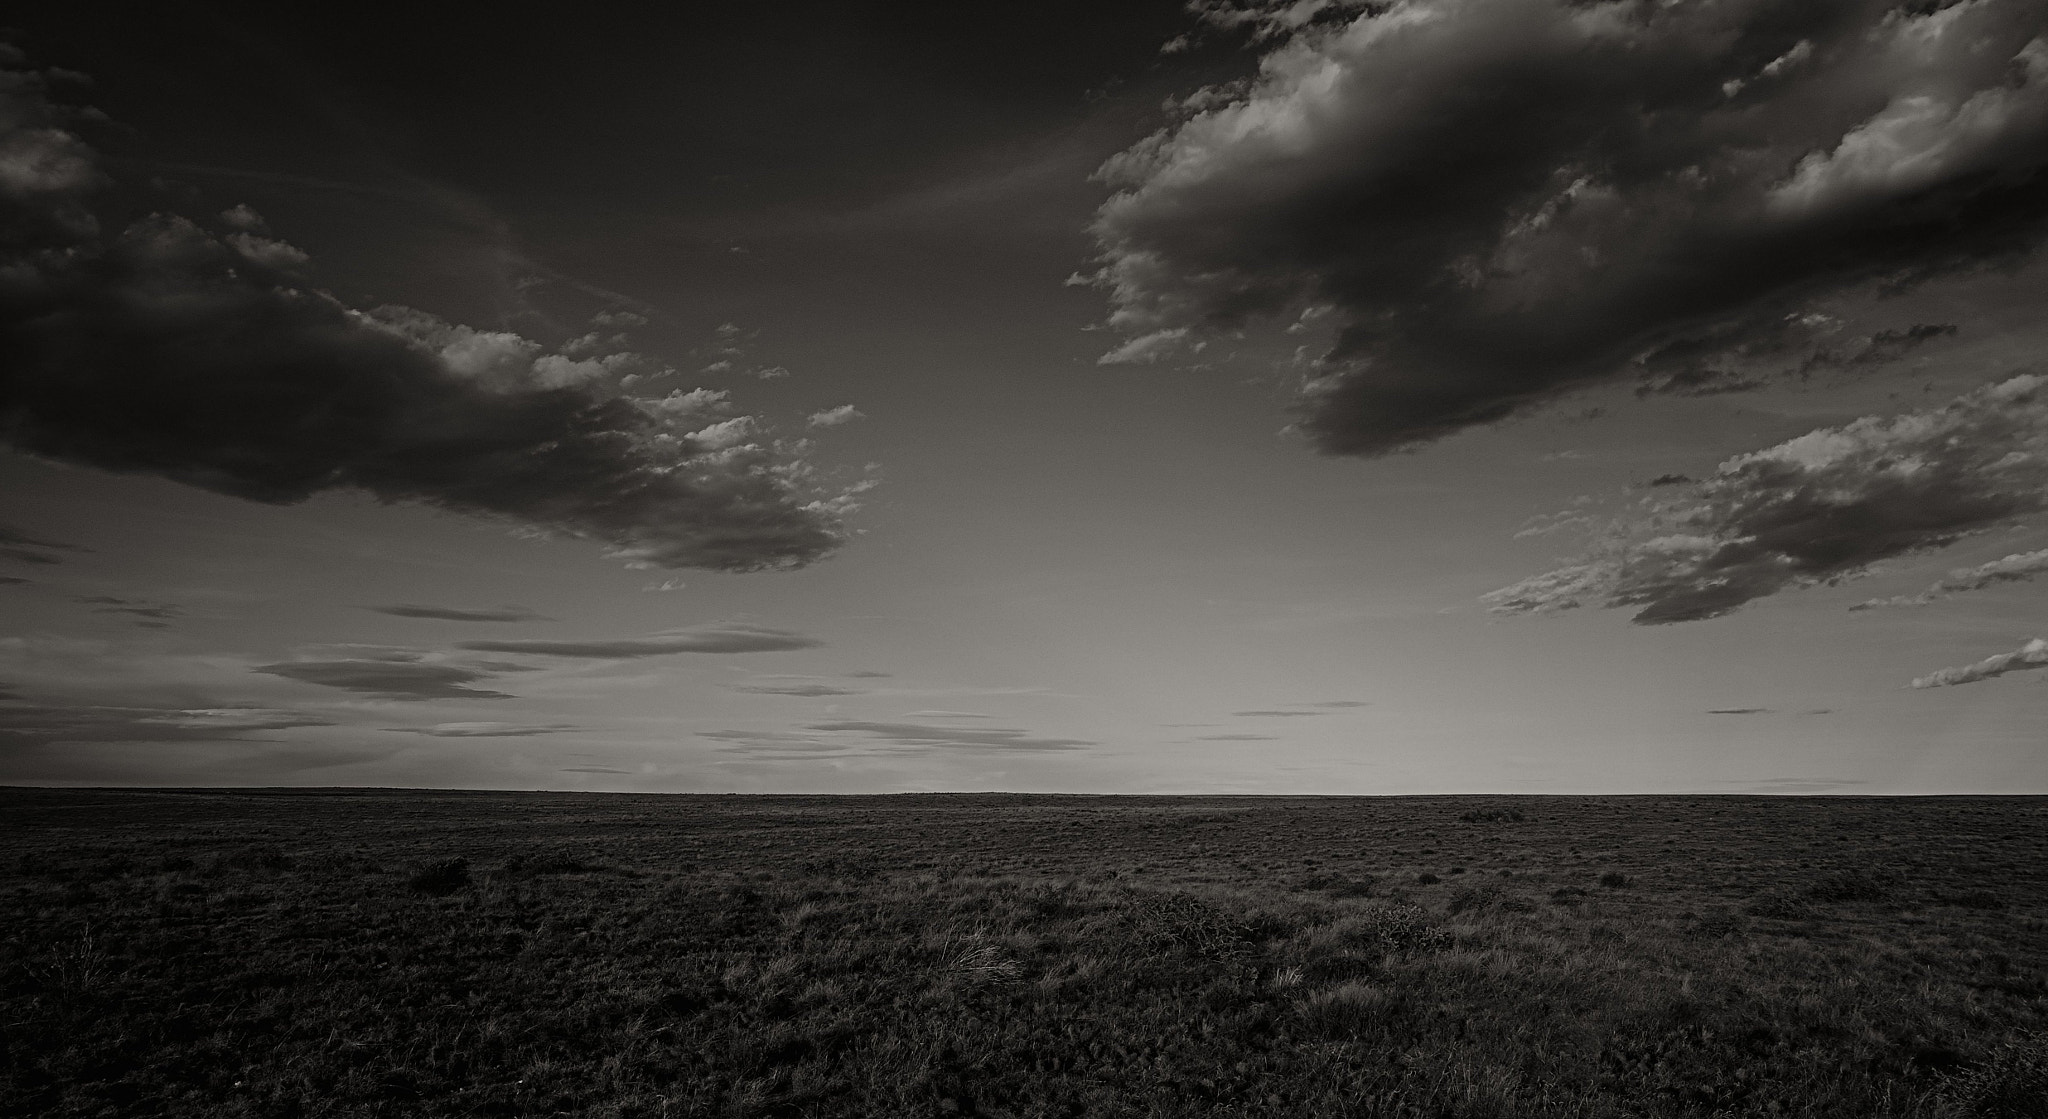 Photograph Dryland1 by Johnny Gomez on 500px